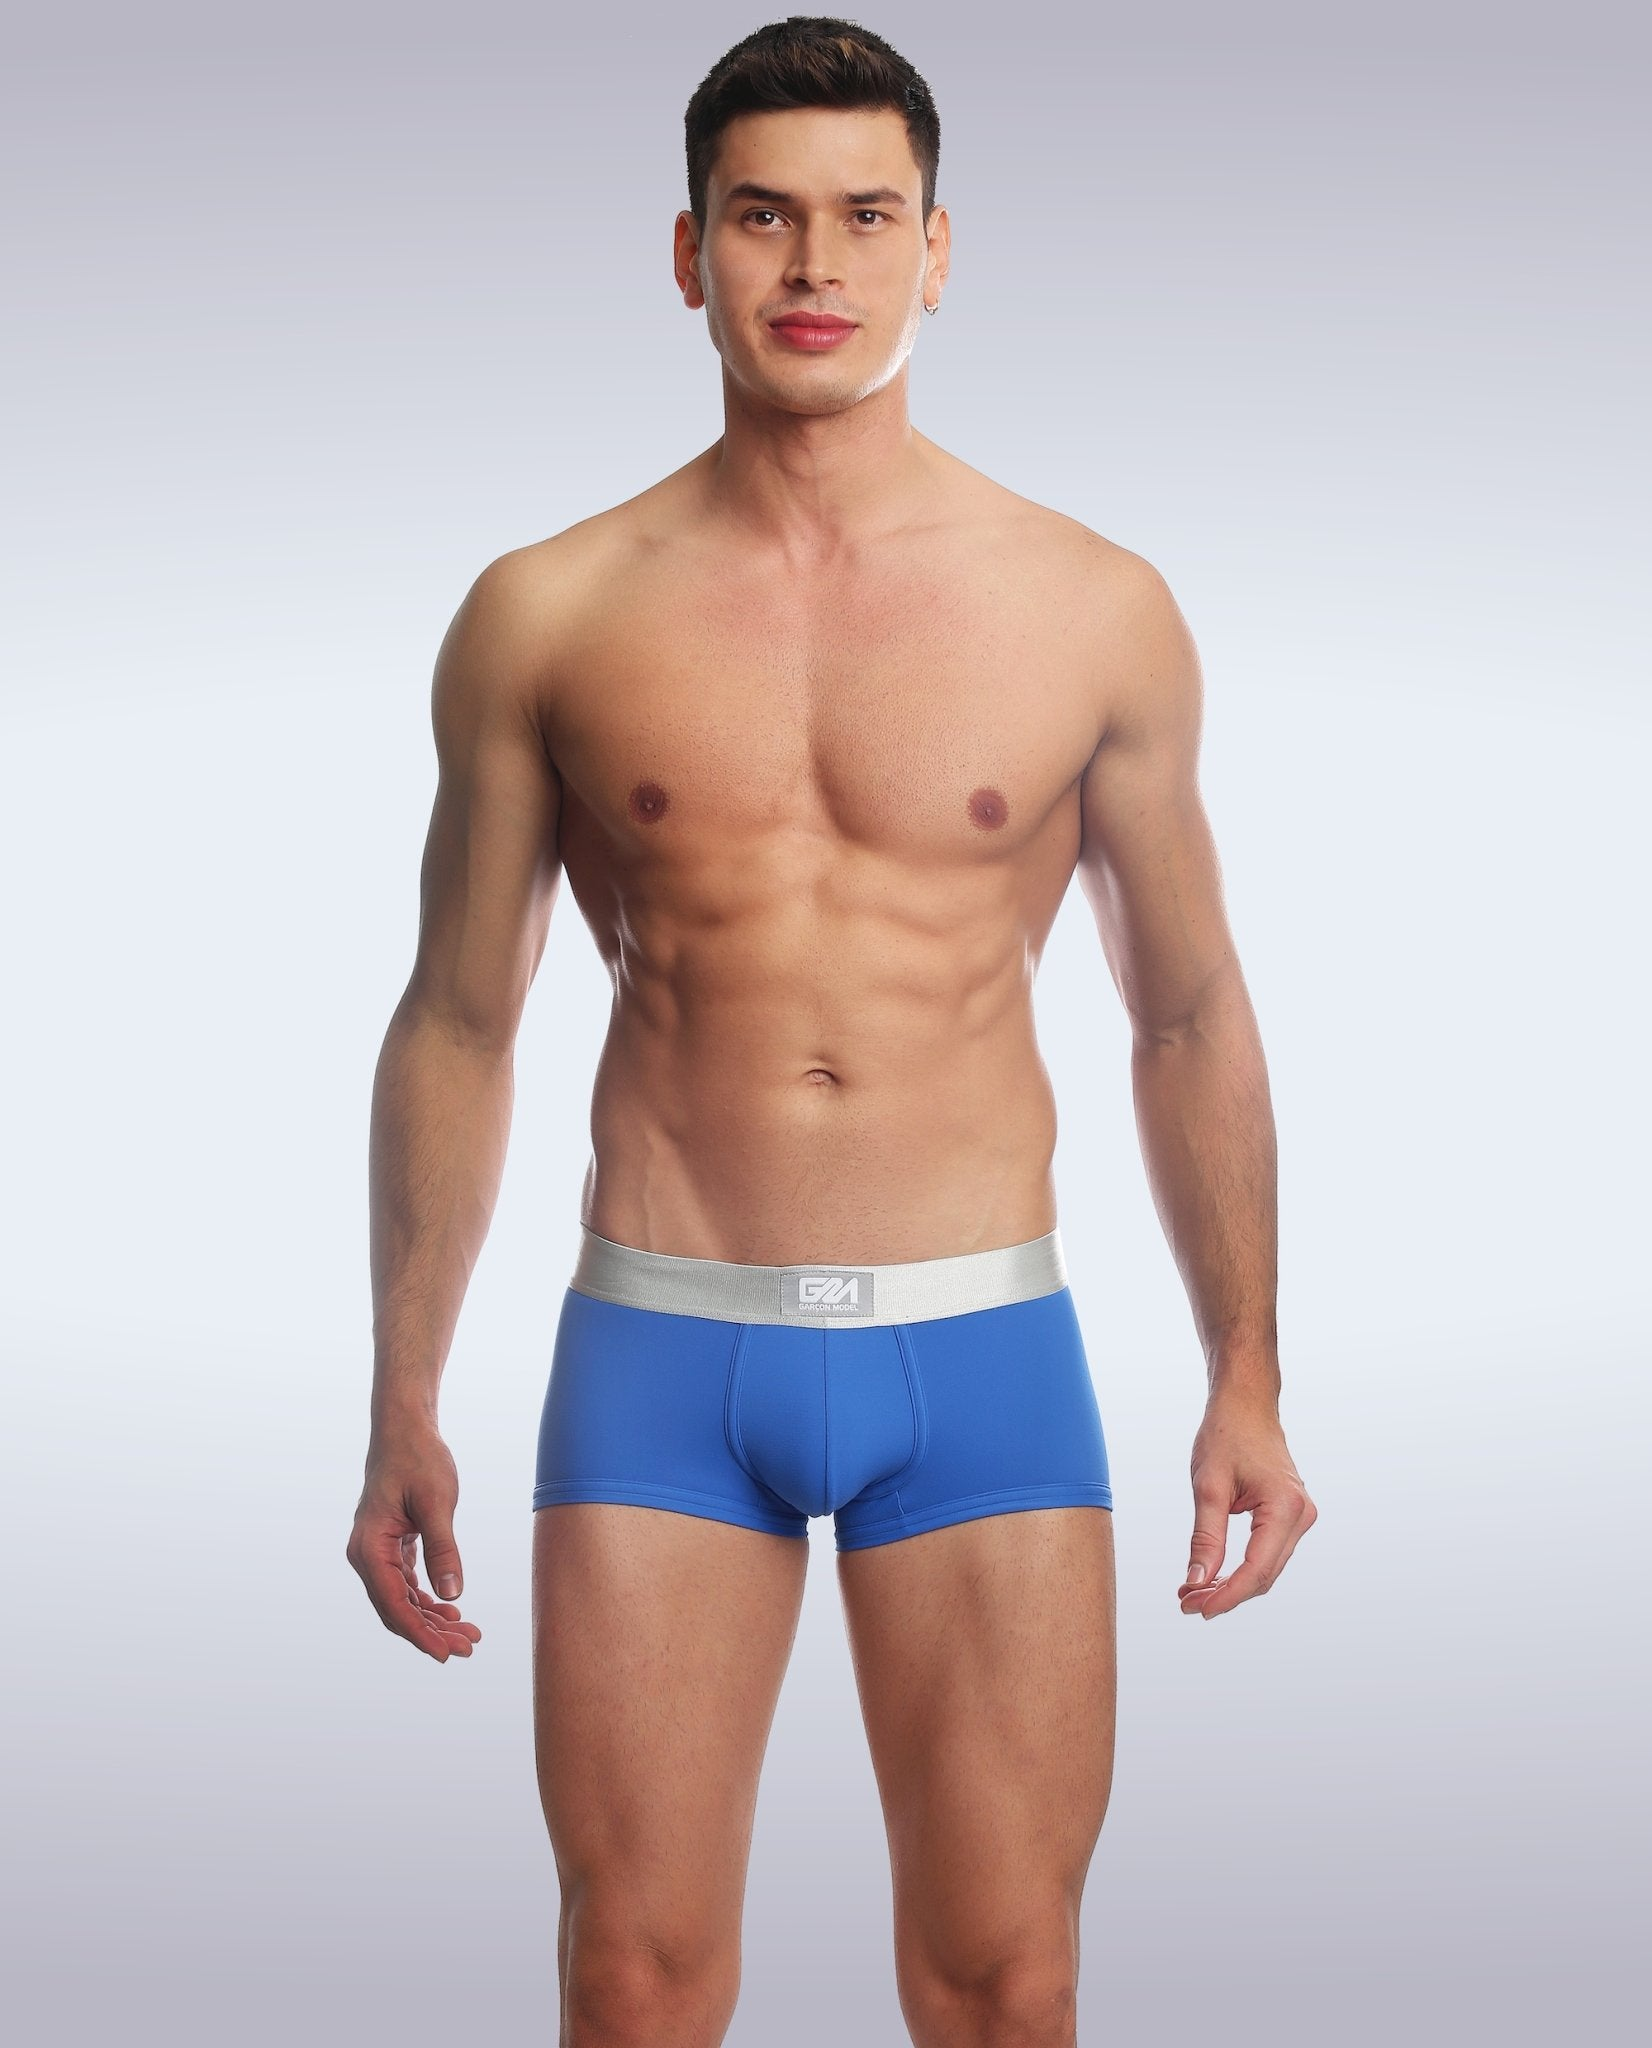 Manhattan Trunks - Garçon Underwear sexy men's underwear Trunks Garçon Underwear